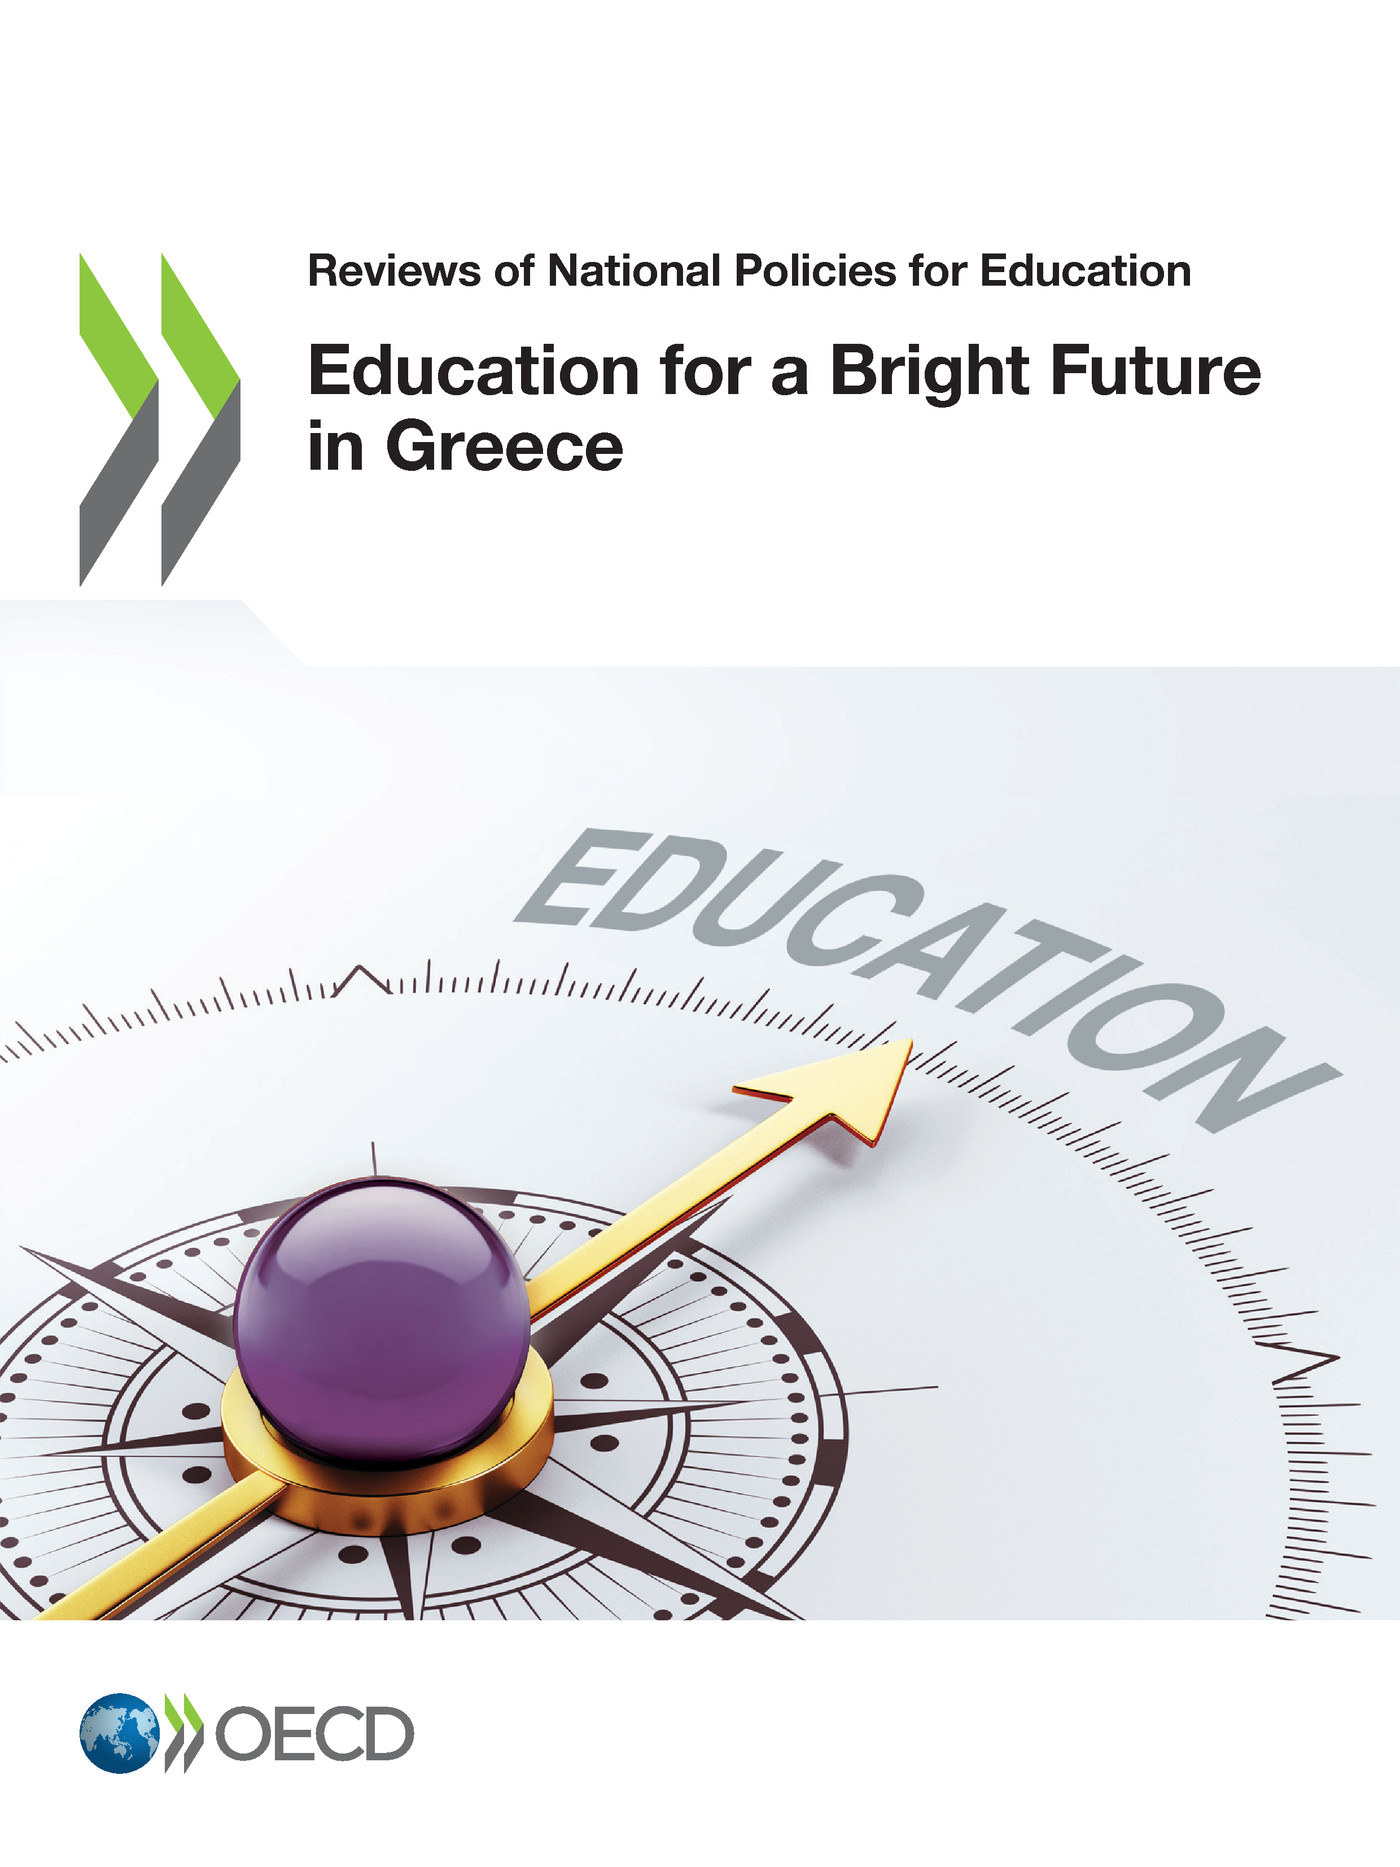 Education for a Bright Future in Greece De  Collectif - OCDE / OECD